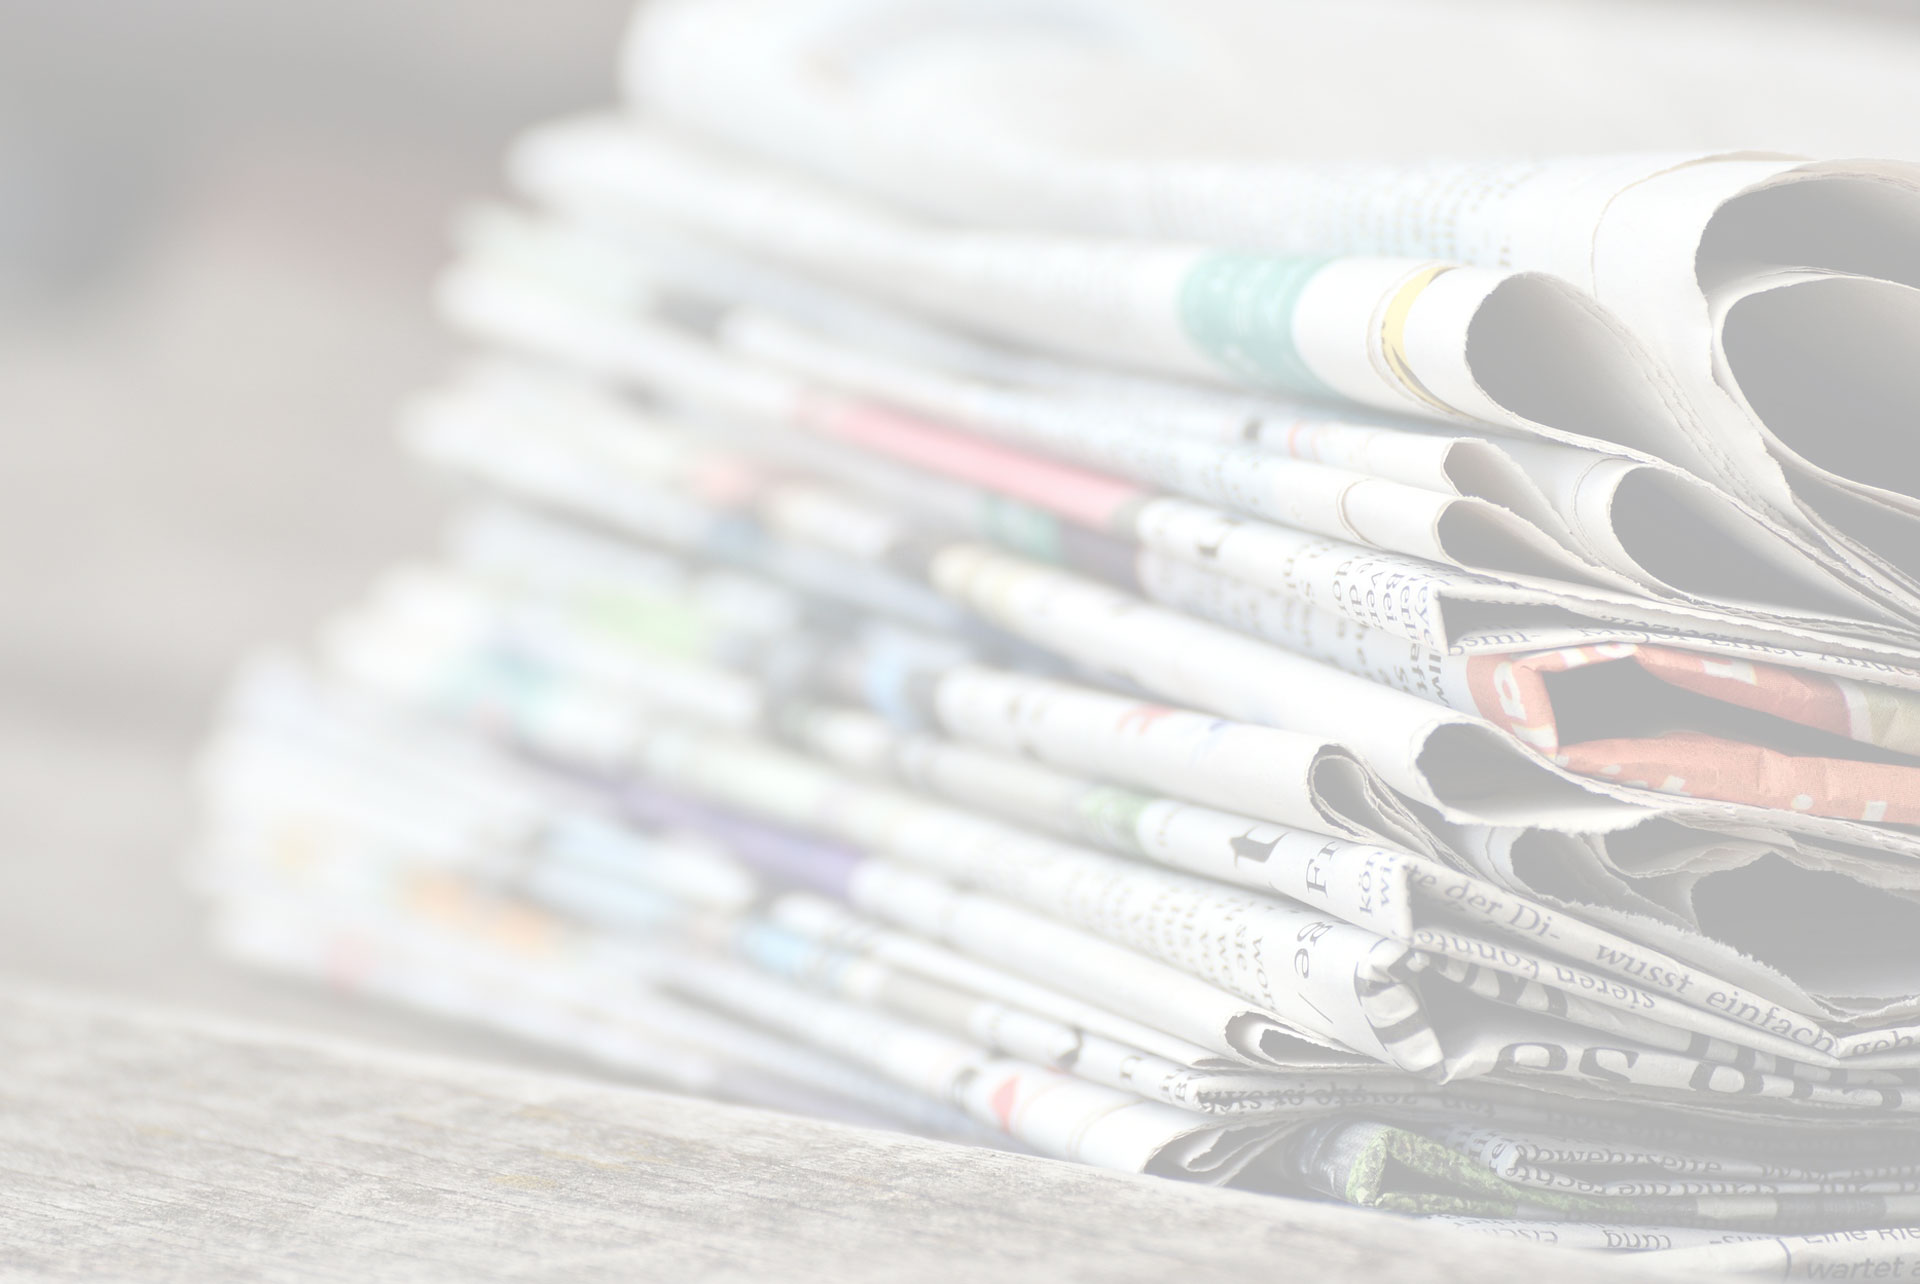 Lo scambio Hamilton Rossi resta top secret: tifosi arrabbiat